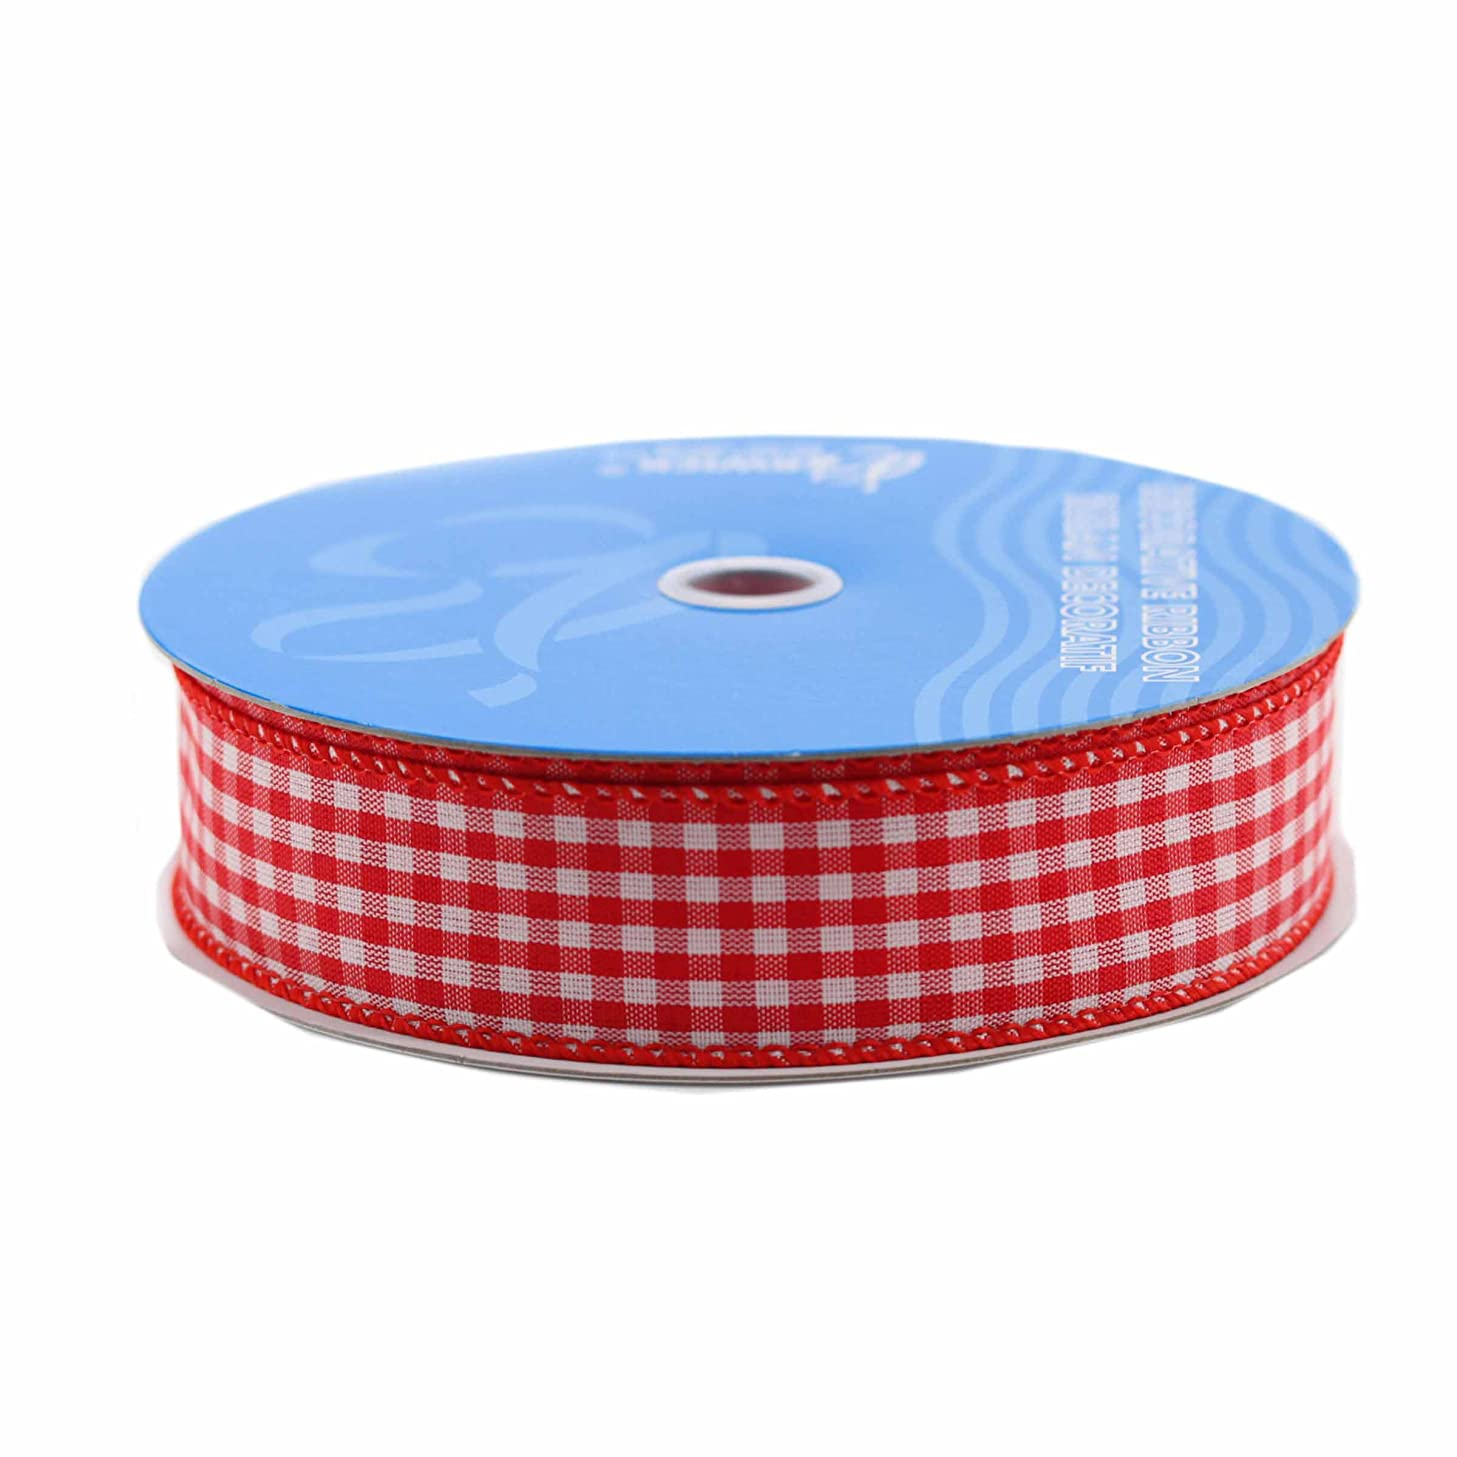 Berwick Wired Edge Picnic Craft Ribbon, 1-1/2-Inch by 50-Yard Spool, Red